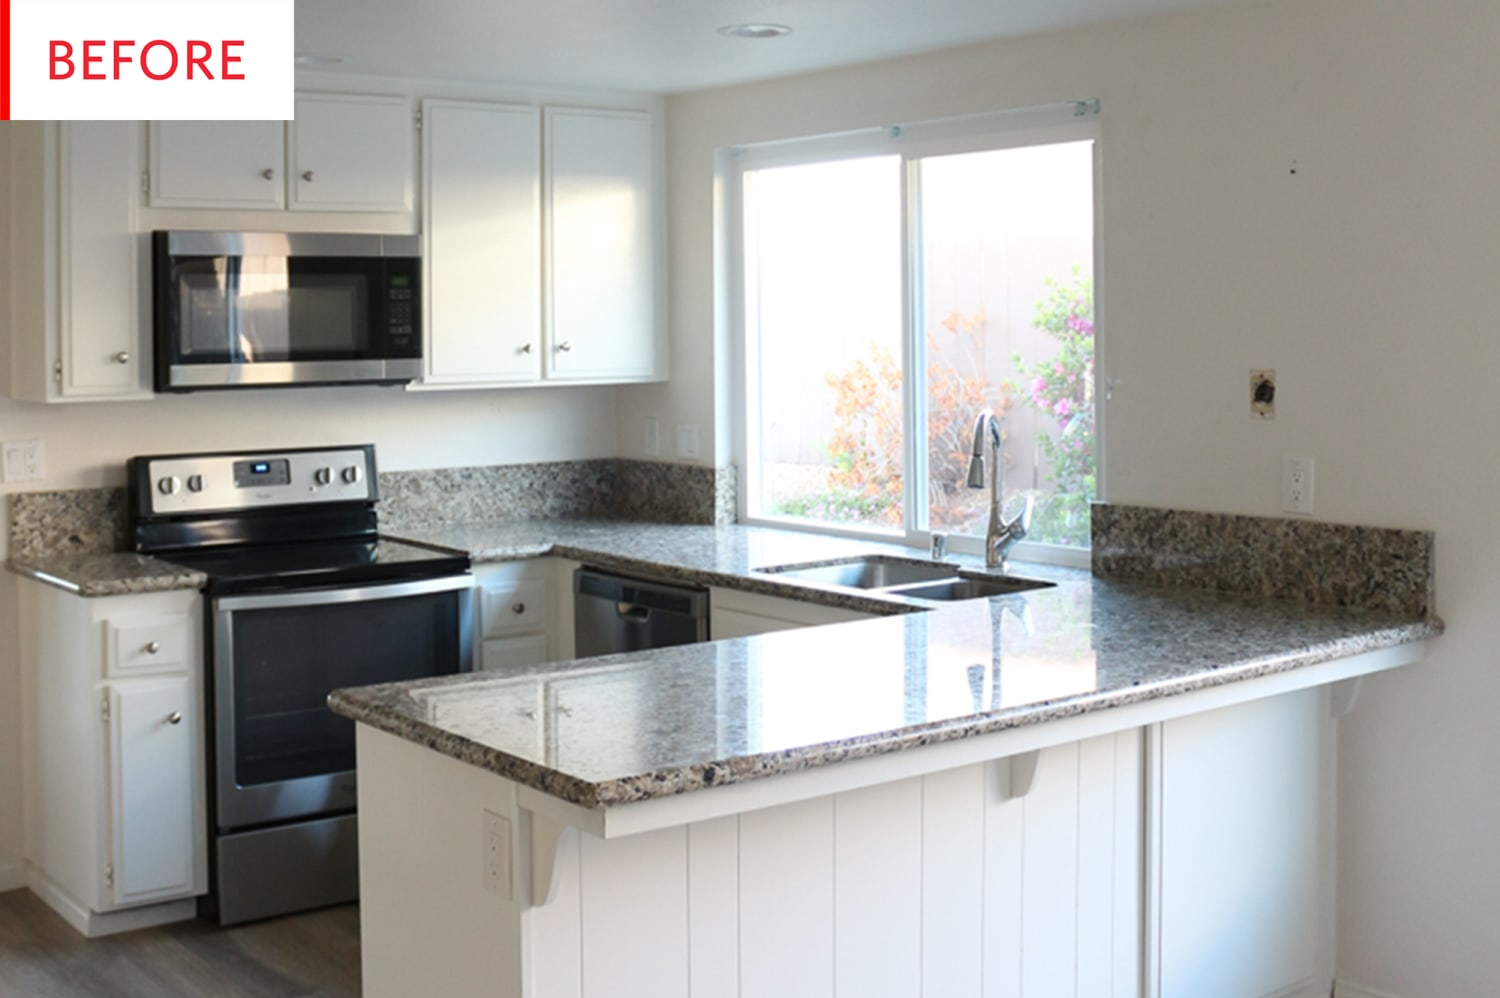 Before and After: This Newly Reconfigured IKEA Kitchen Has a Bit of a Twist